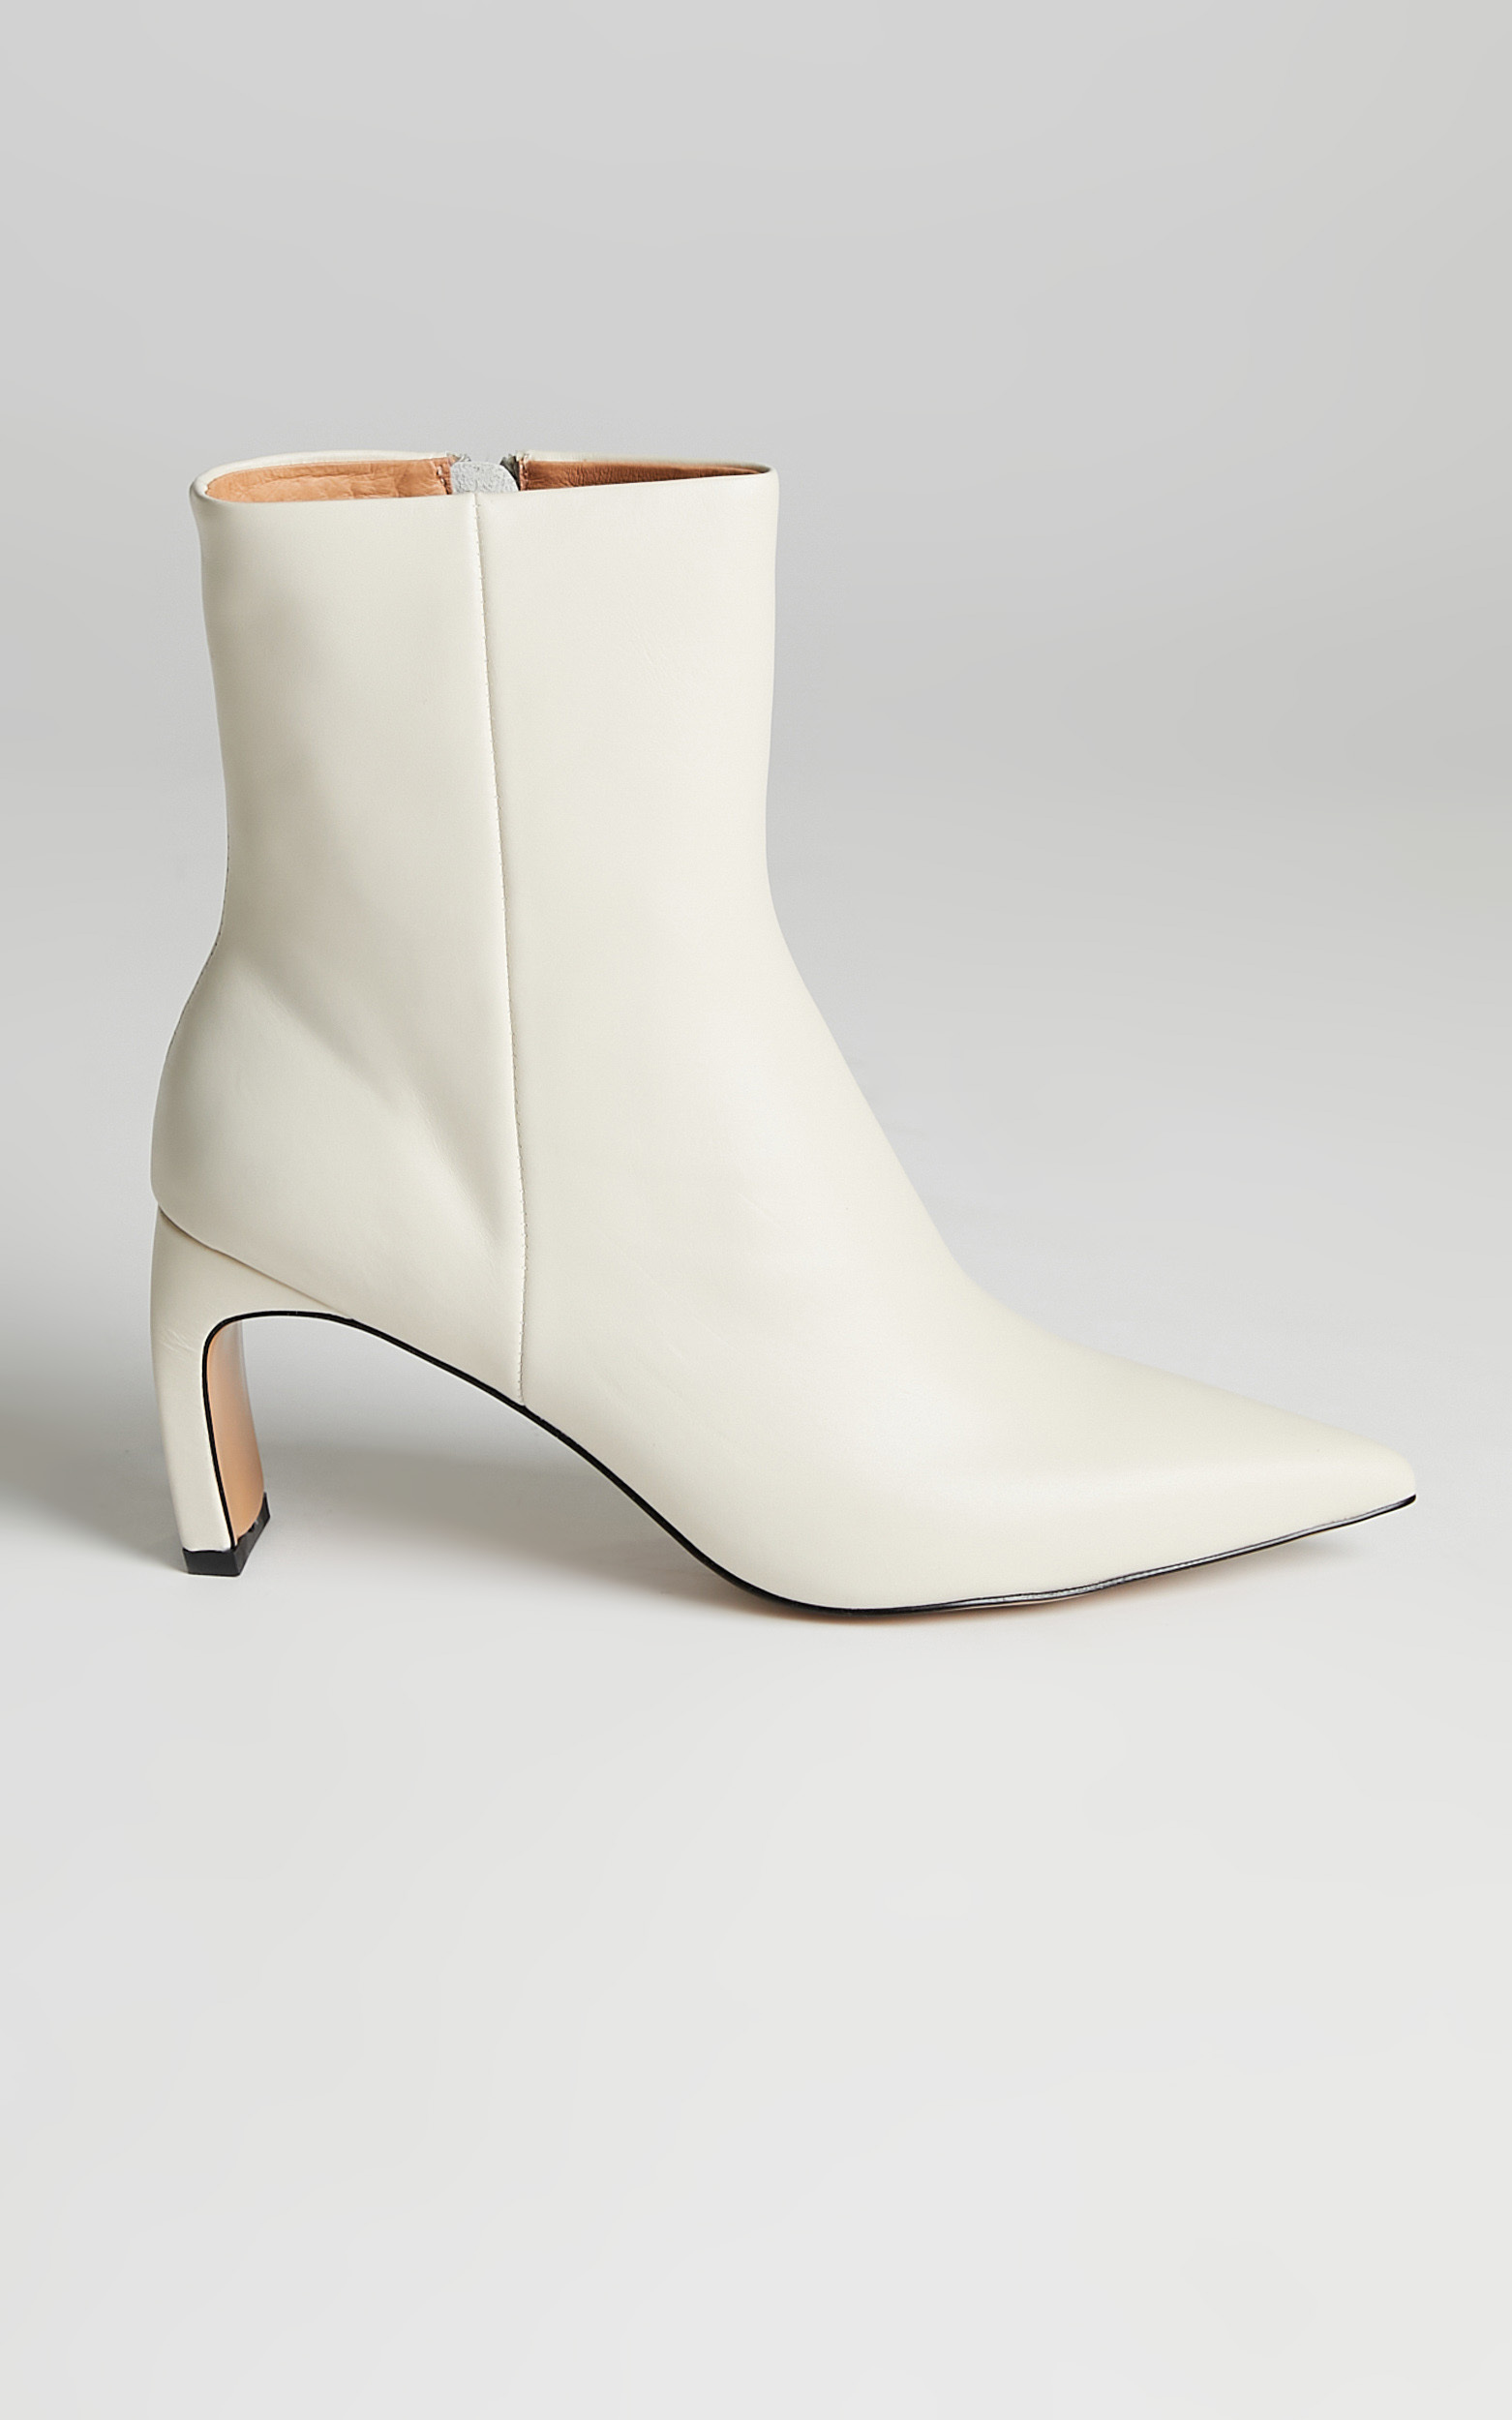 Alias Mae - Jameen Boots in Bone Leather - 10.5, WHT2, hi-res image number null